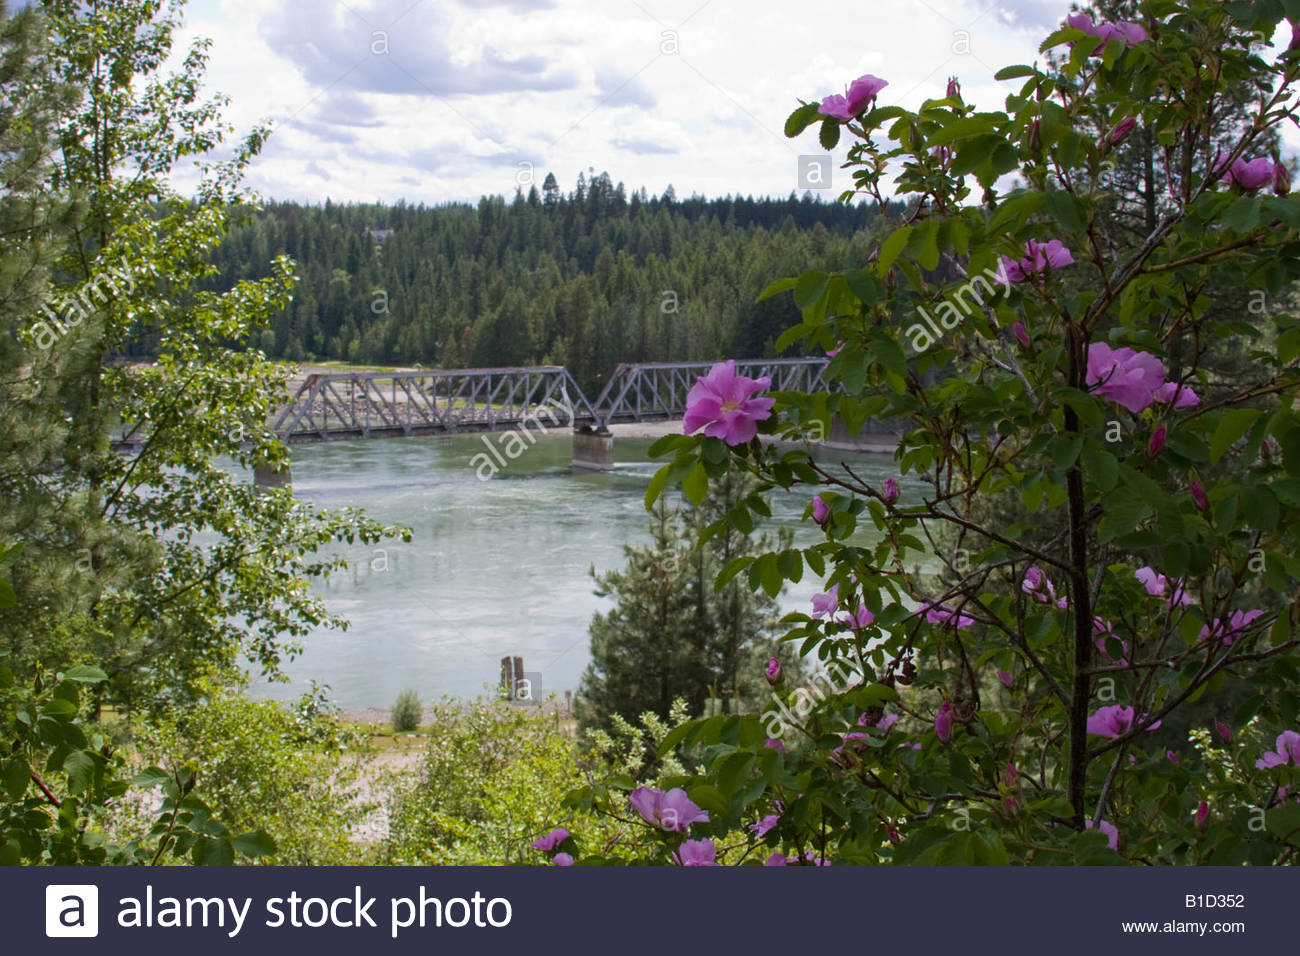 Railroad bridge over the Pend Oreille River in North Idaho with a wild rose bush blooming in the foreground. - Stock Image